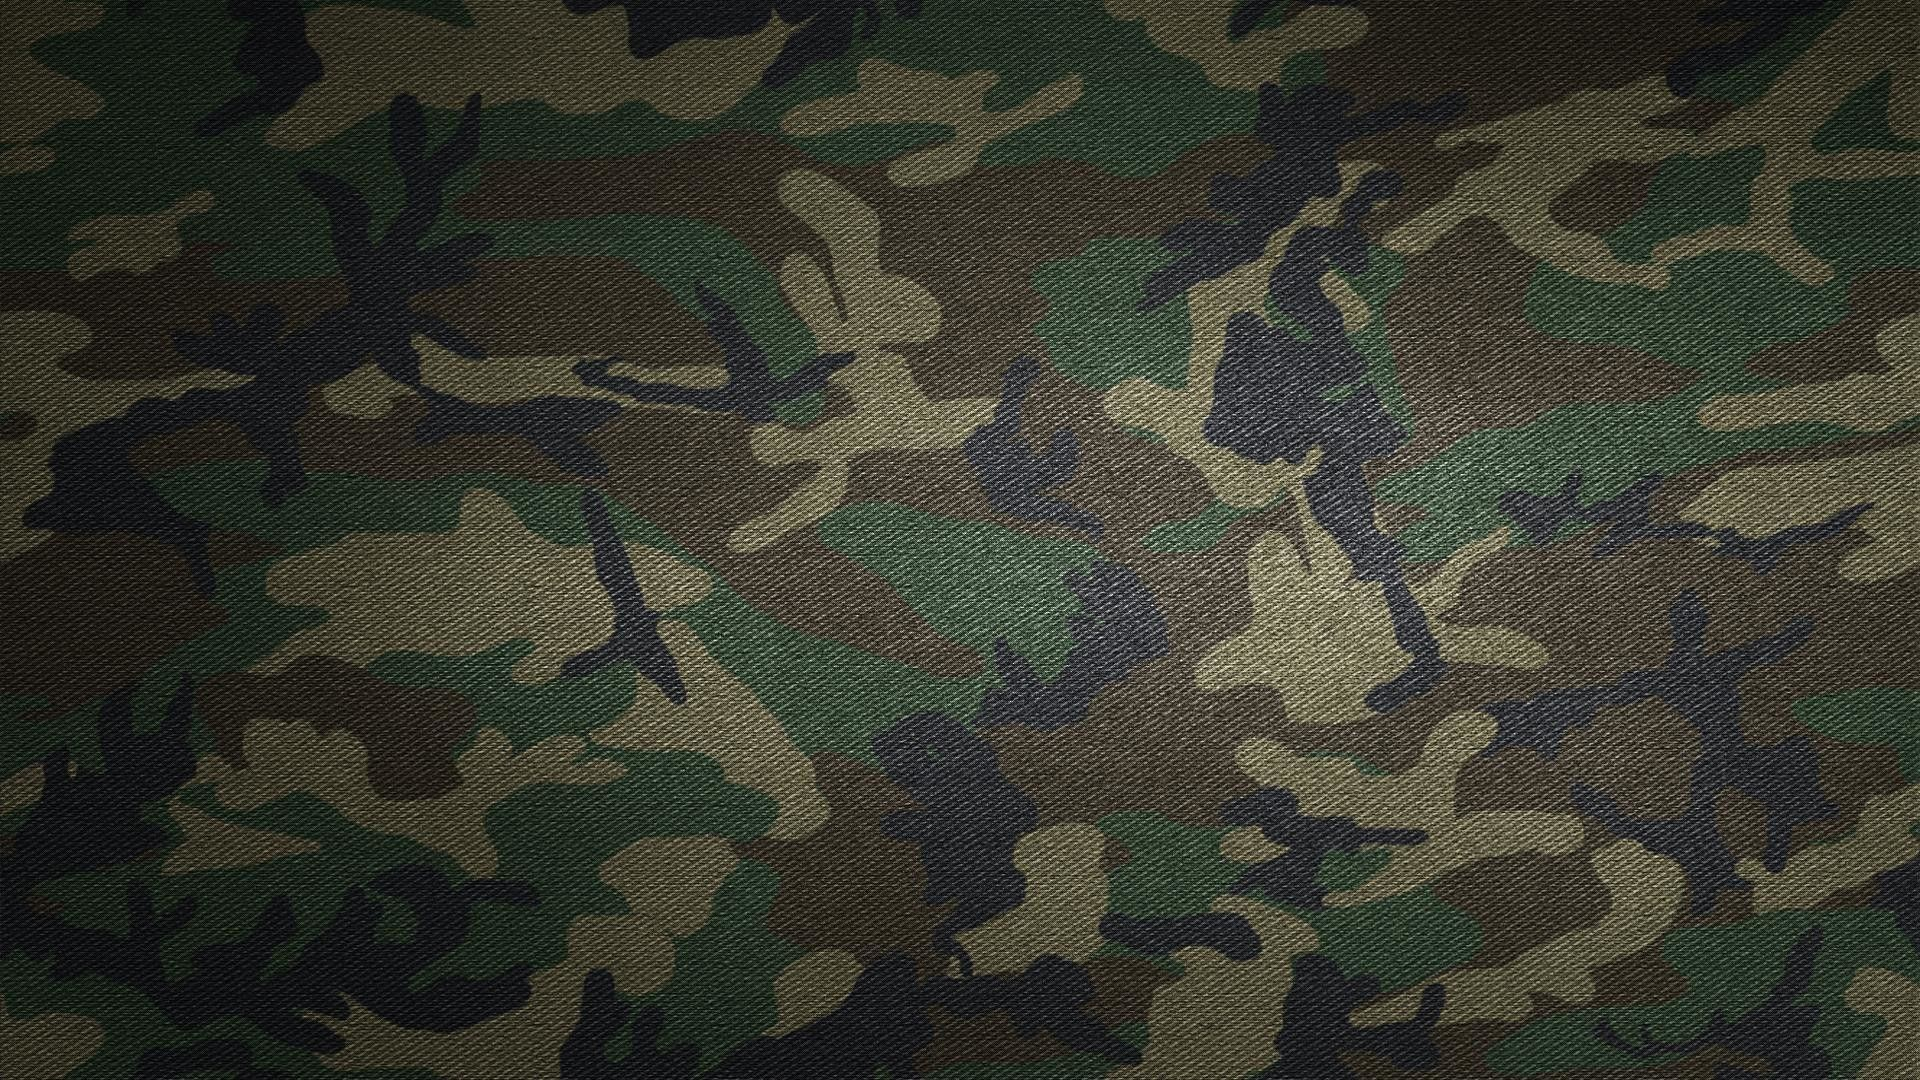 1920x1080 70+ Camouflage Desktop Wallpapers on WallpaperPlay